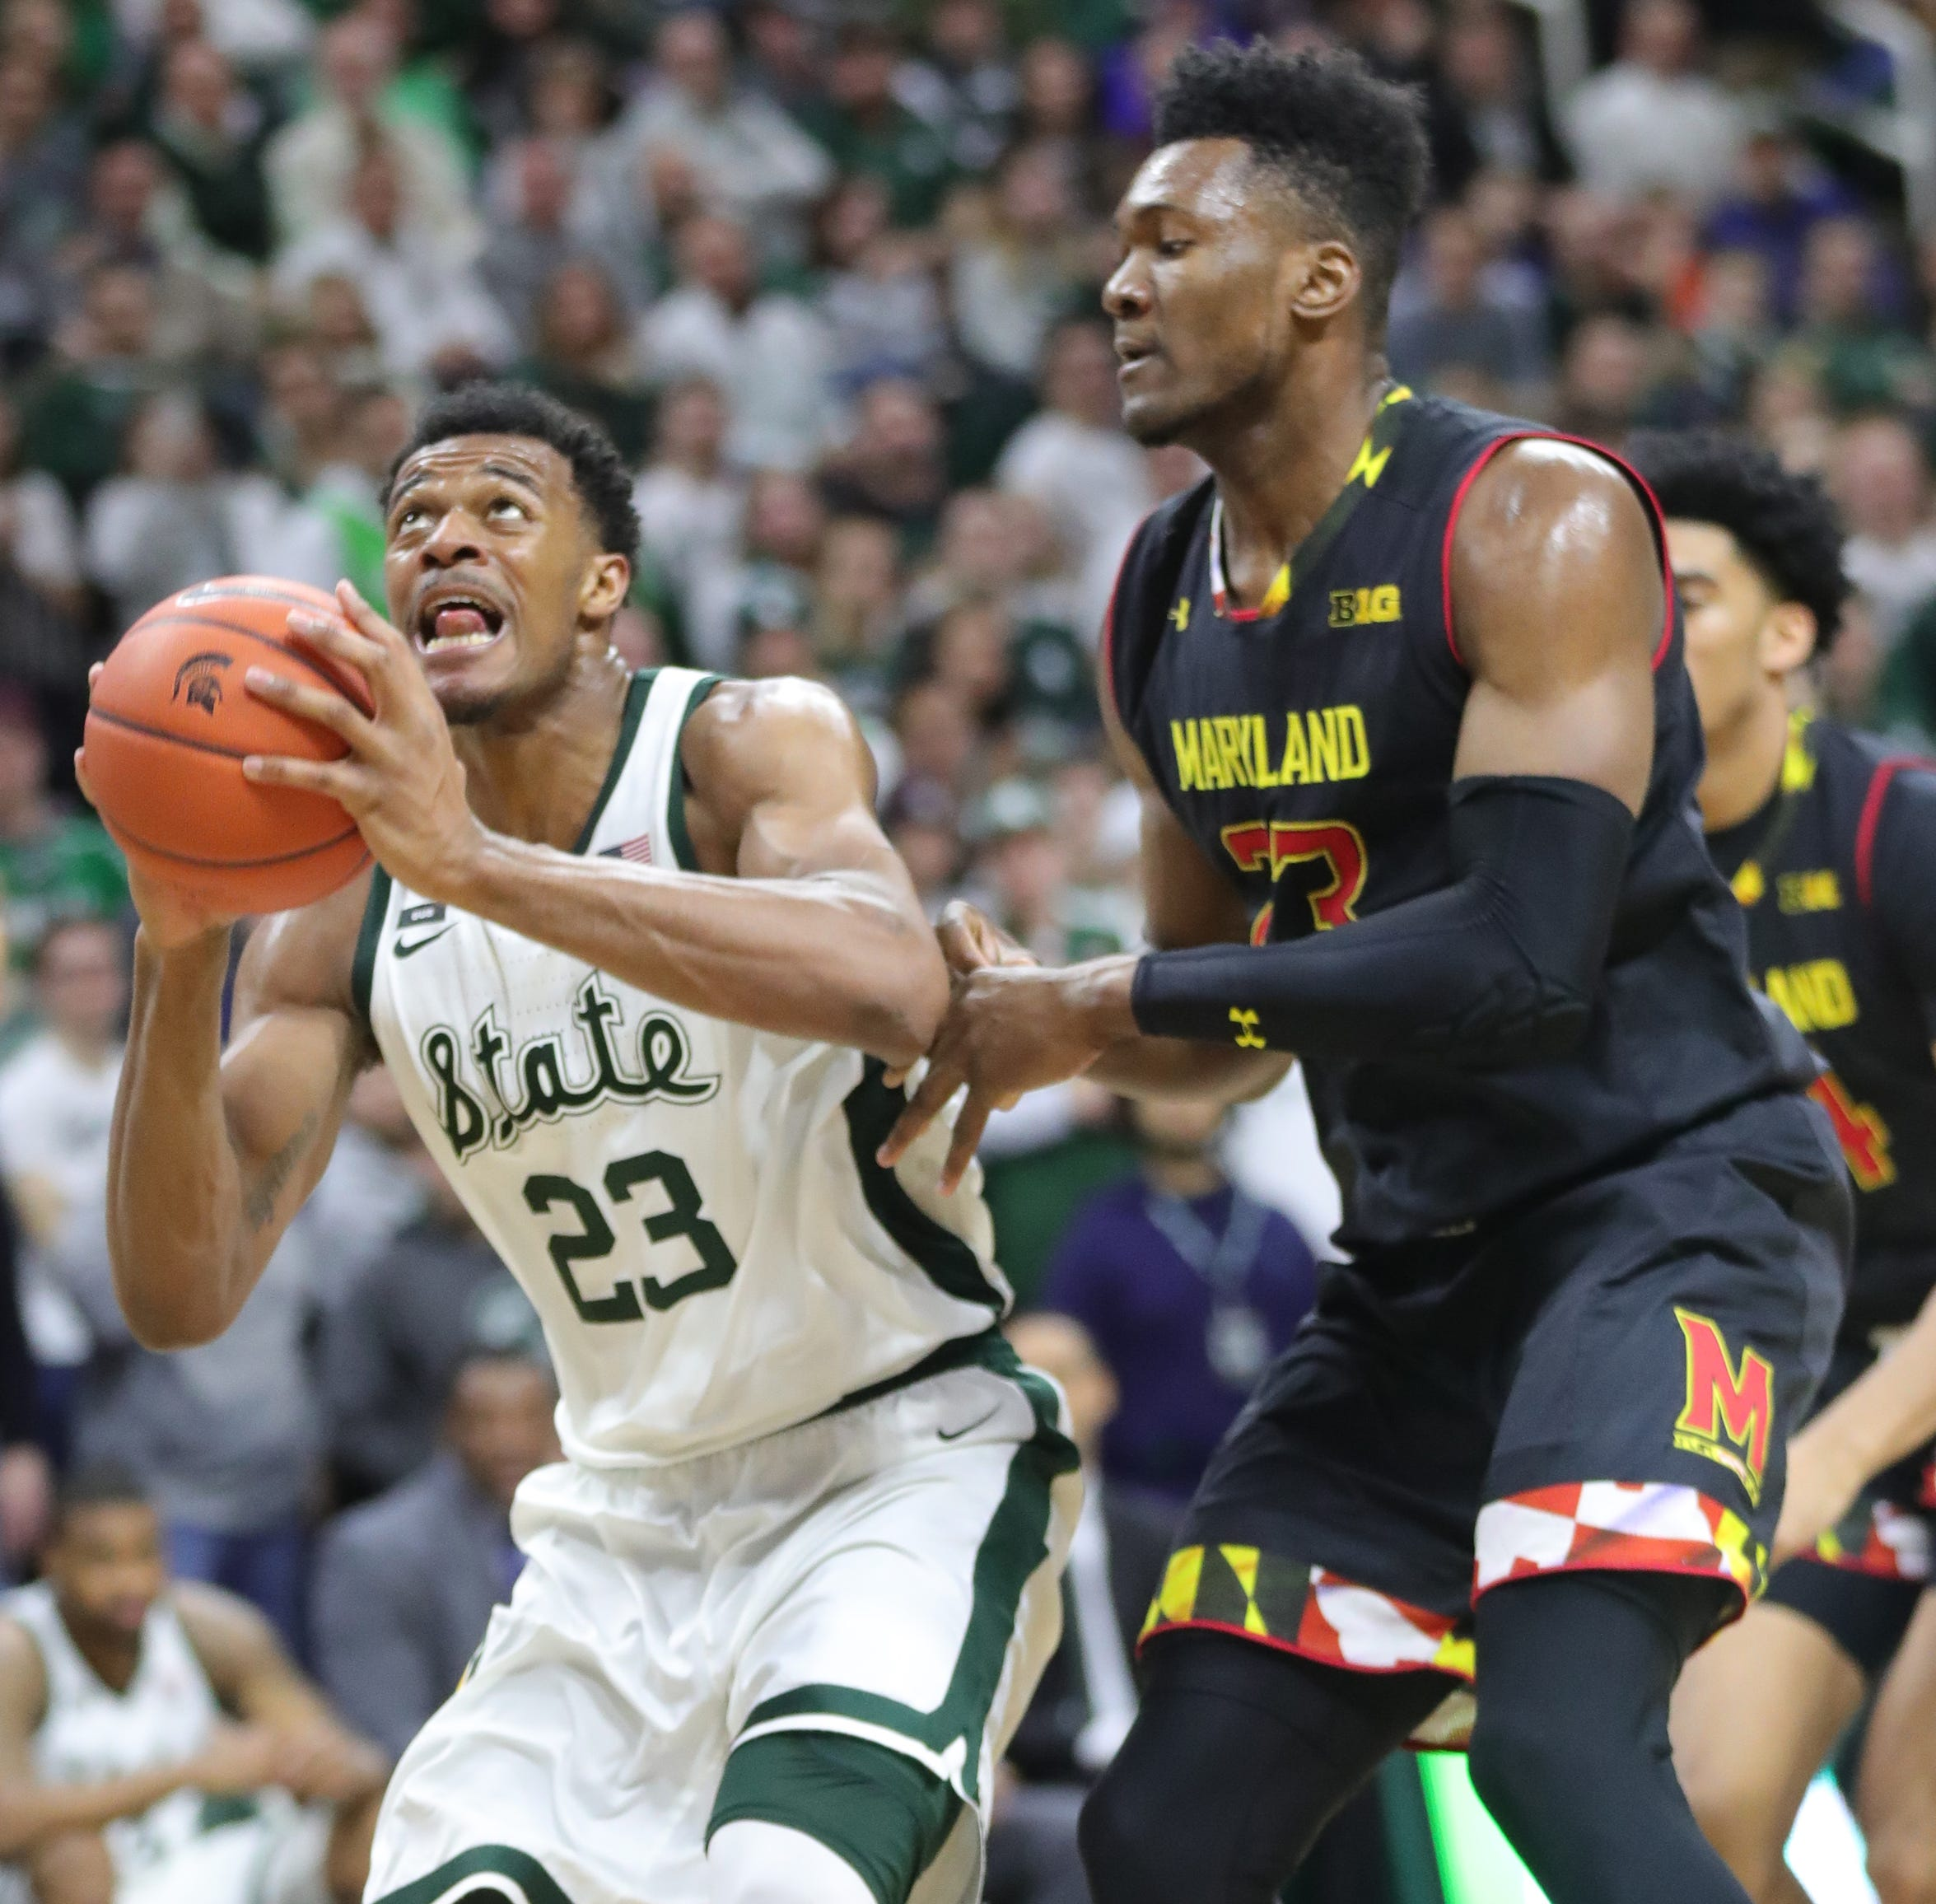 Couch: As another 5-star center snubs MSU, the focus is the big men already on the roster